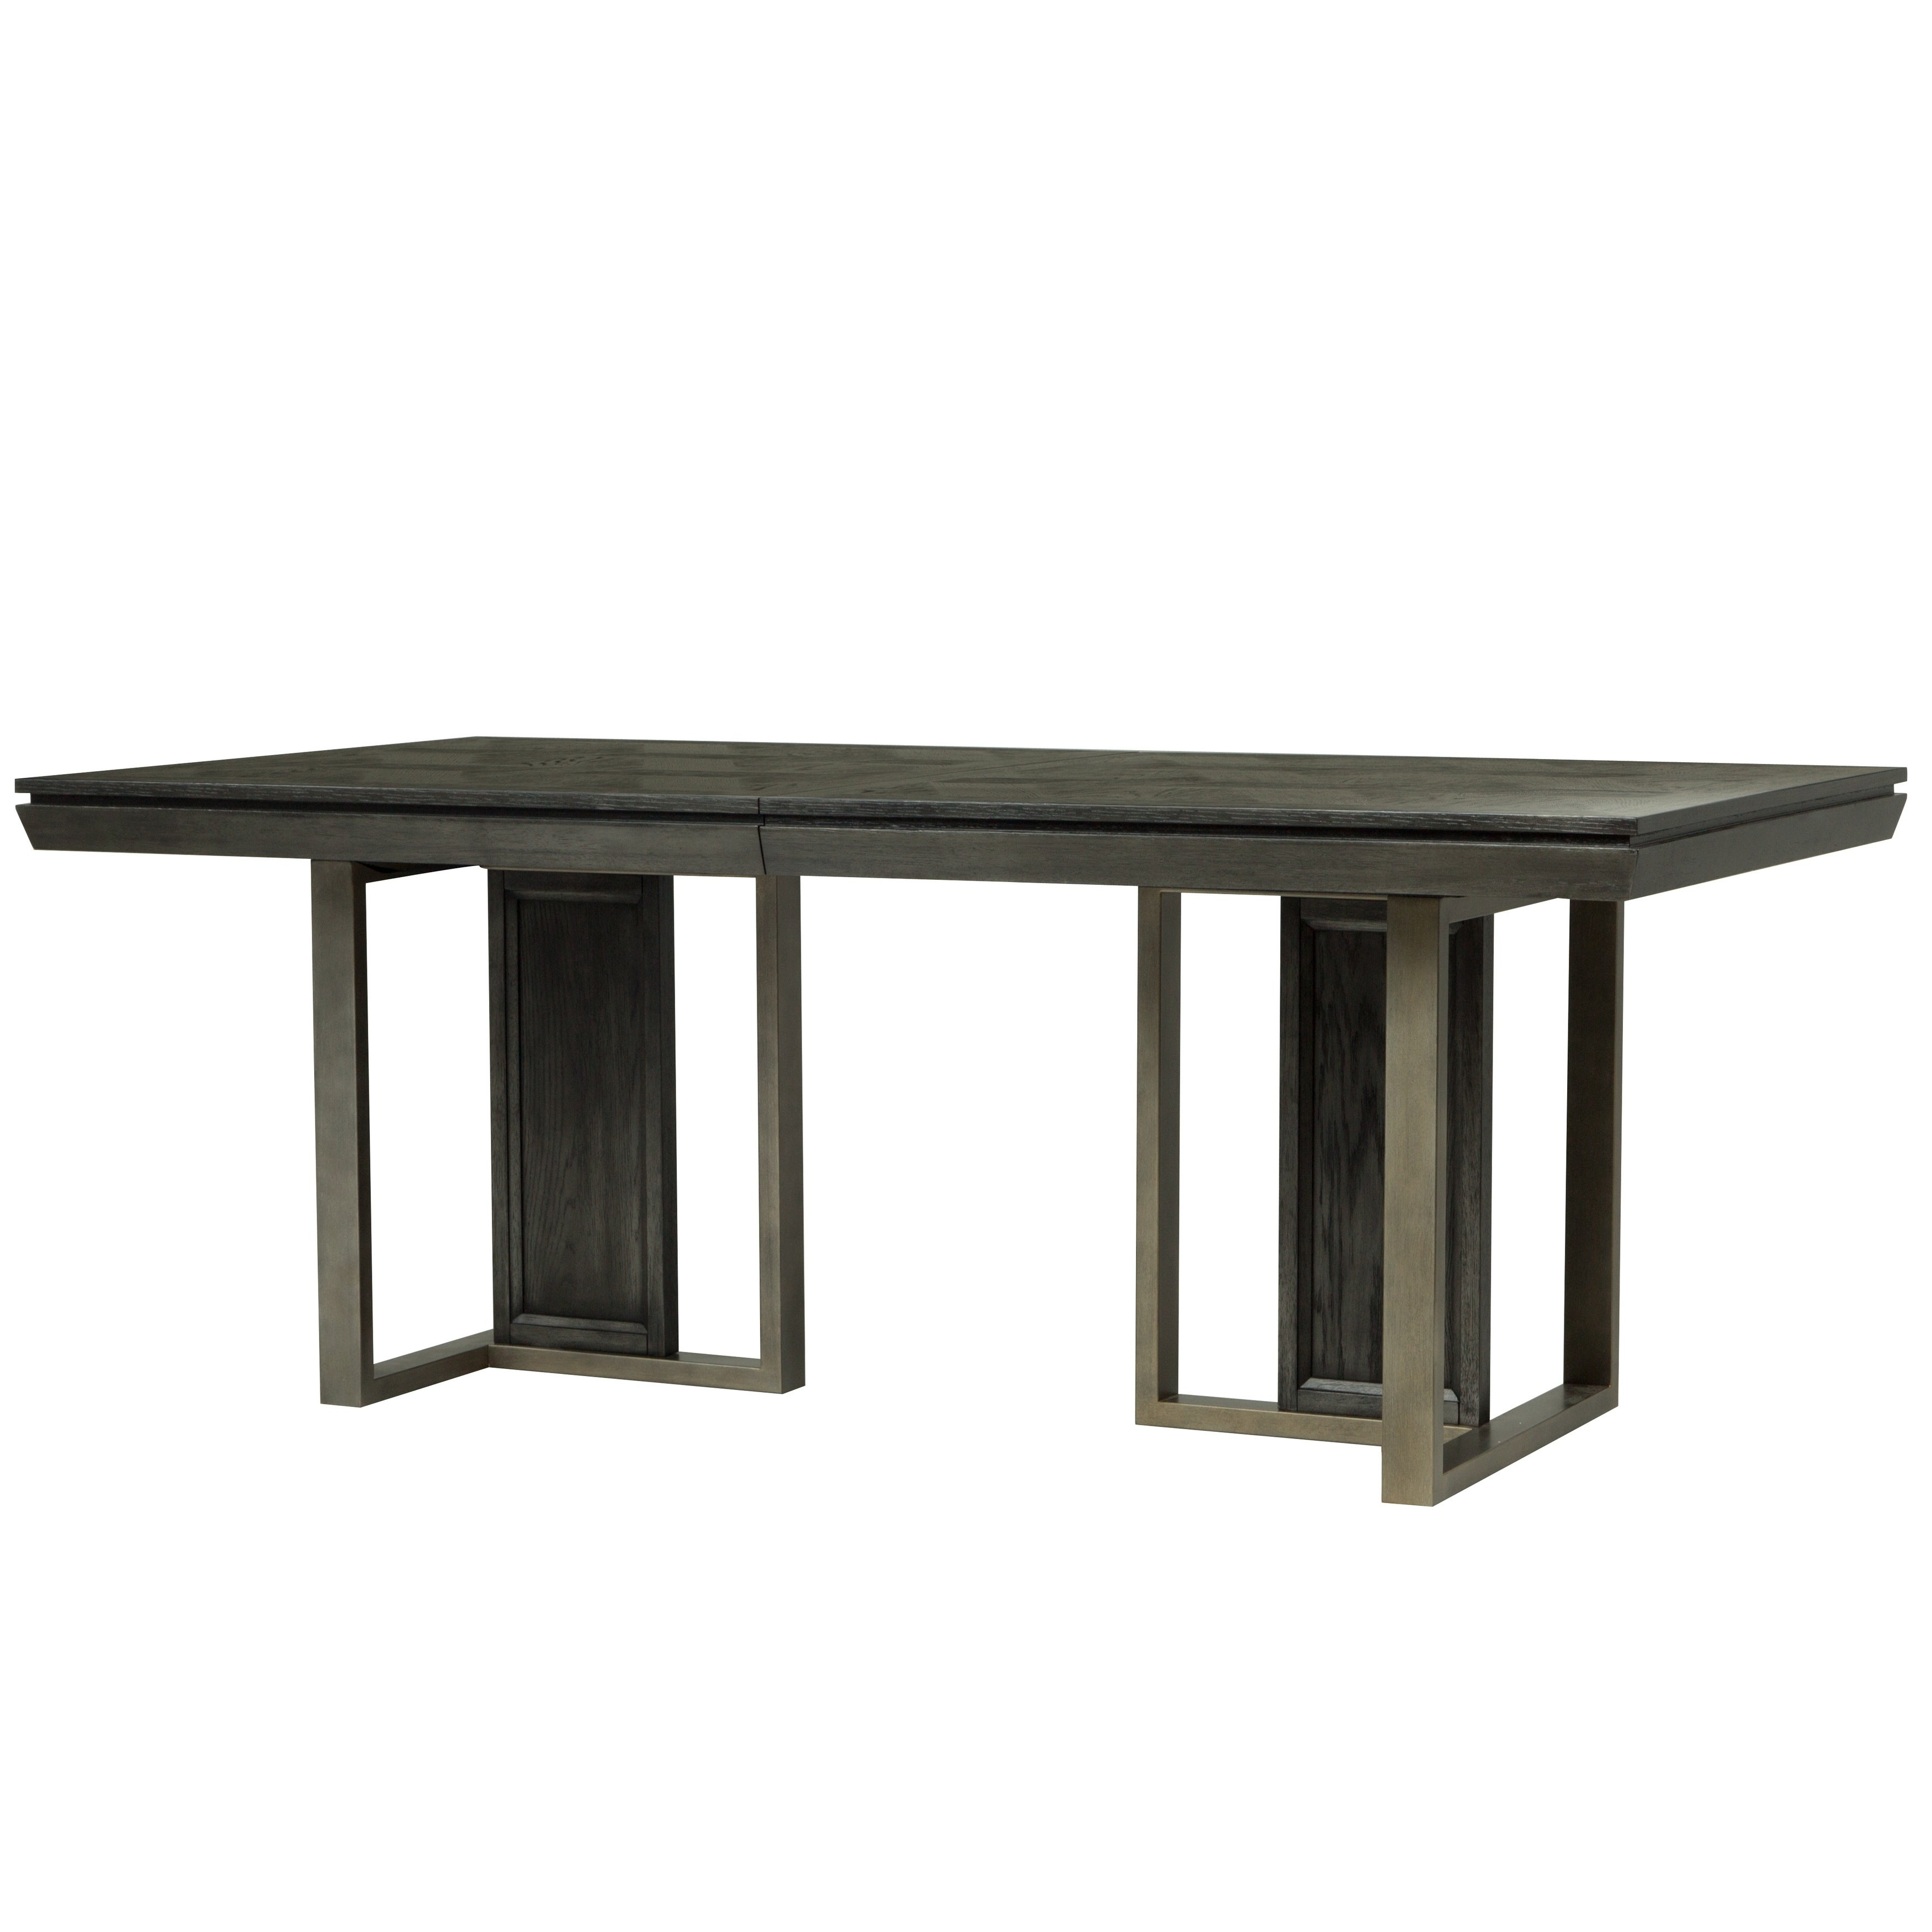 dining table base of furniture antique farmhouse overstock shipping product home traditional today garden black wood lucena pedestal style america free round